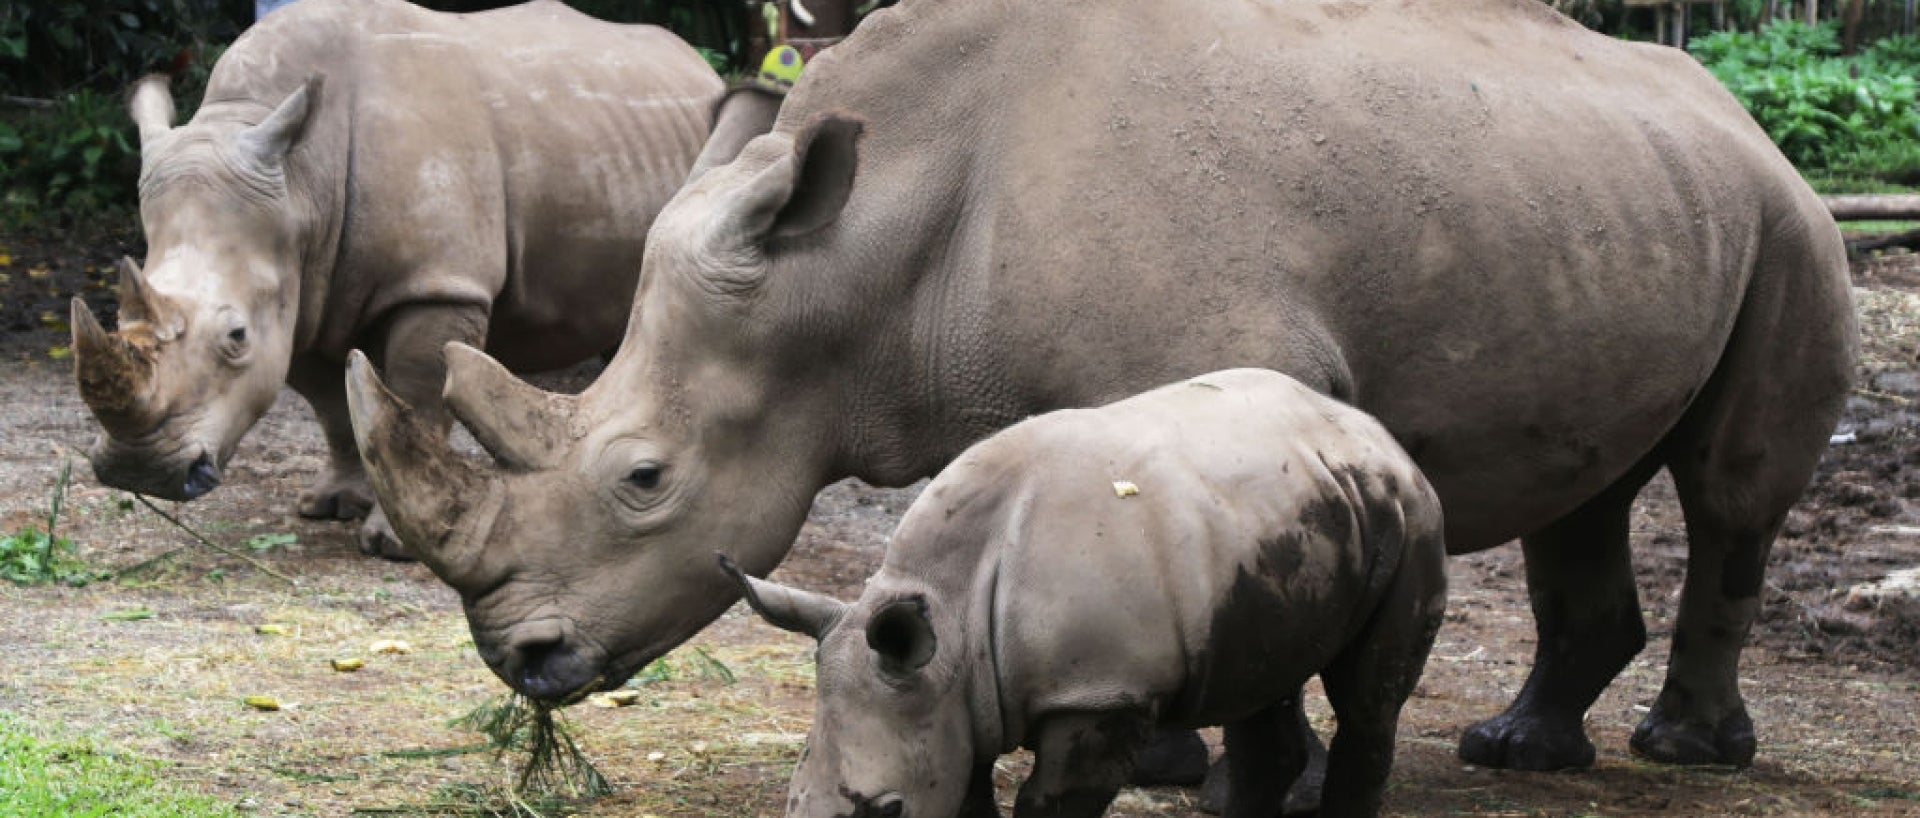 Baby white rhino in front of two adult rhinos